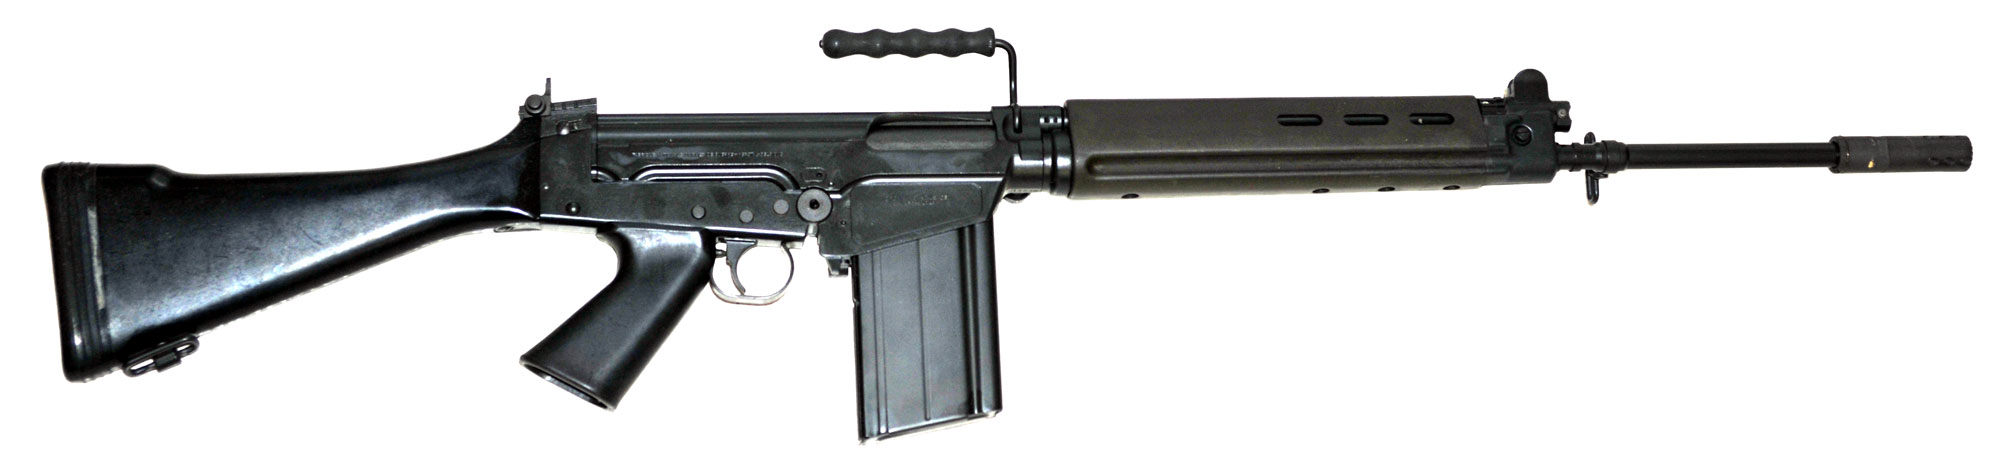 India Ordinance Factory Board (OFB) India's old Semi-Automatic Battle-Rifle FN FAL 7.62mm .30Caliber (Belgium_FN), licensed manufactured in India